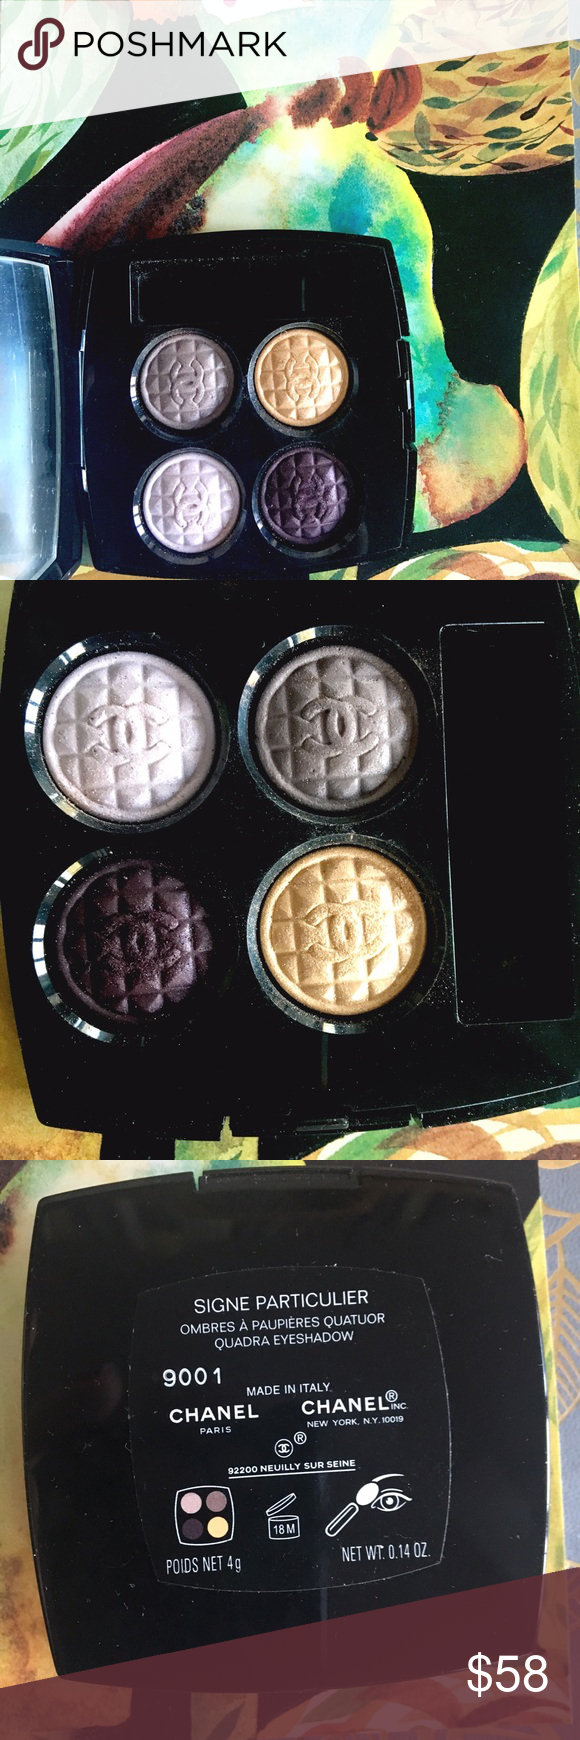 Sale LE Chanel Signe Particulier Eye Travel brushes